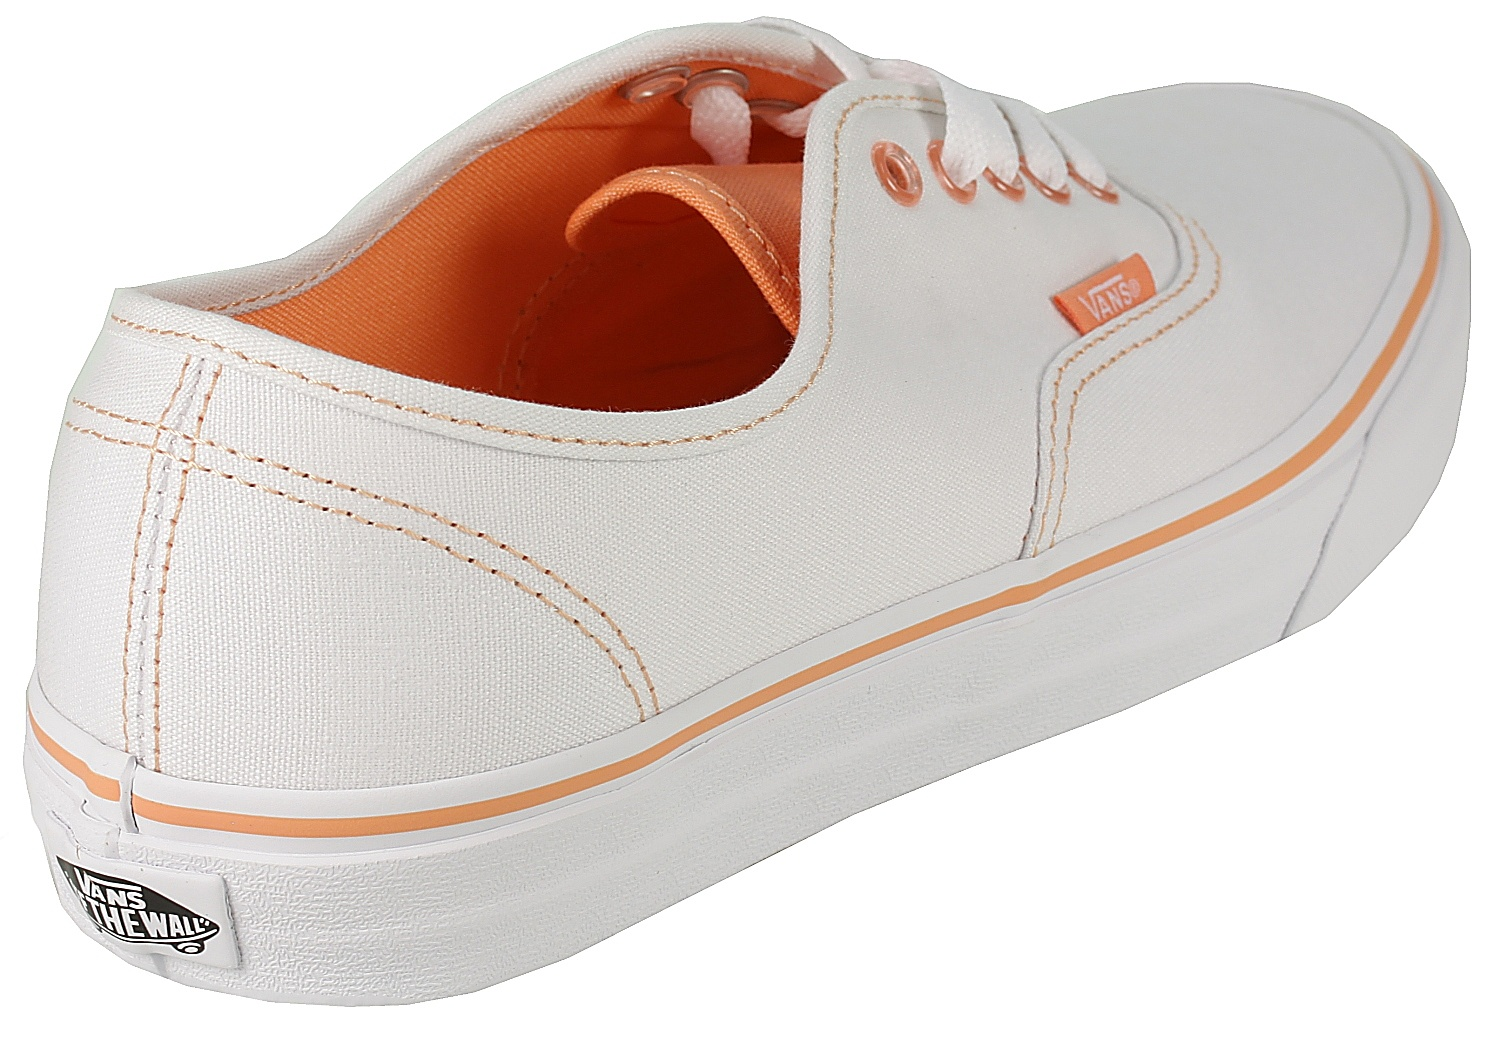 339f429c0ba7 ... Vans Authentic Shoes - Clear Eyelets True White Canteloupe ...